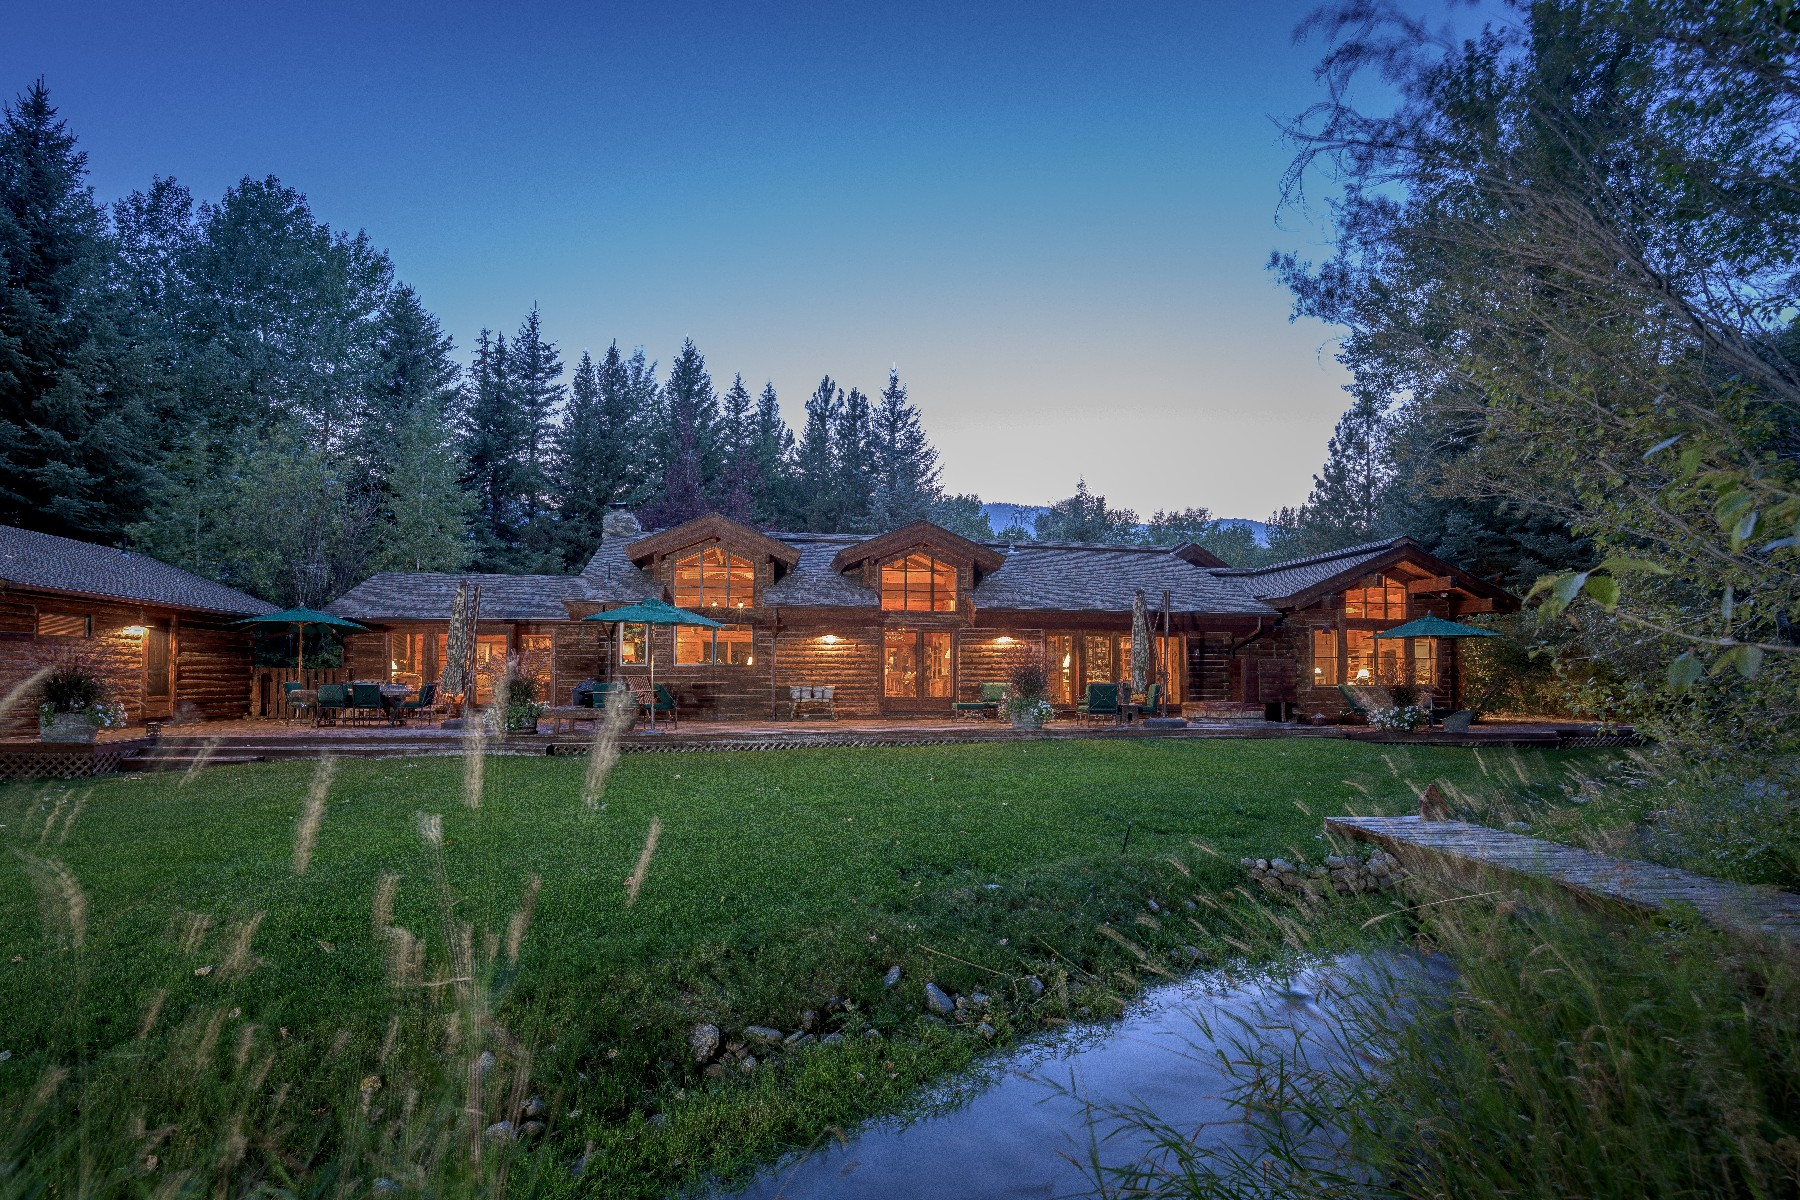 Single Family Home for Sale at Captivating Gimlet Compound 102 Deer Run Rd Ketchum, Idaho 83340 United States